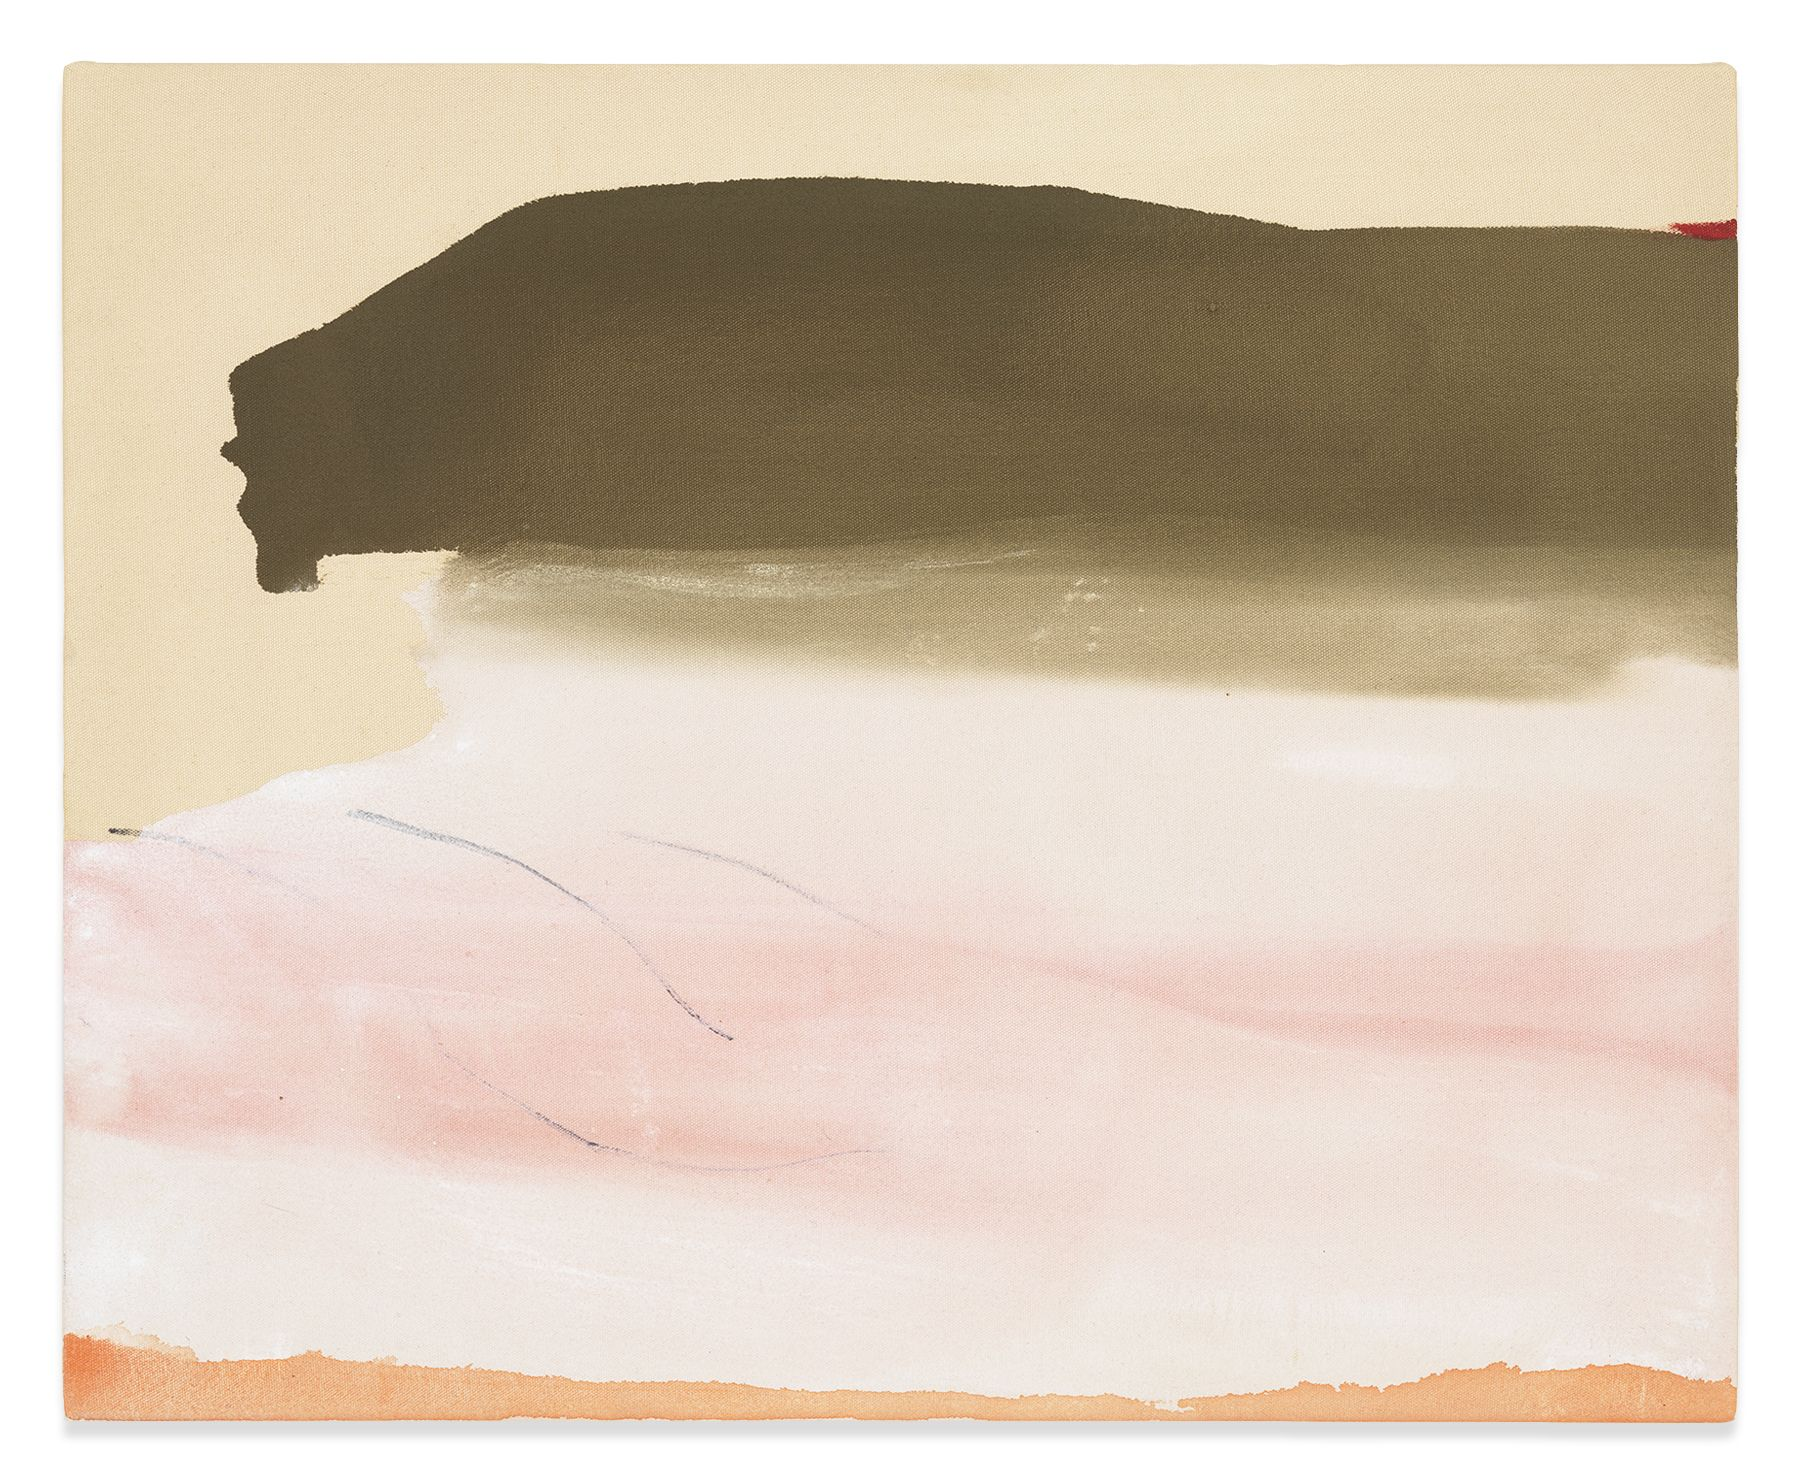 Second Wish, 1974, Acrylic on canvas, 21 x 25 3/4 inches, 53.3 x 65.4 cm, MMG#31384